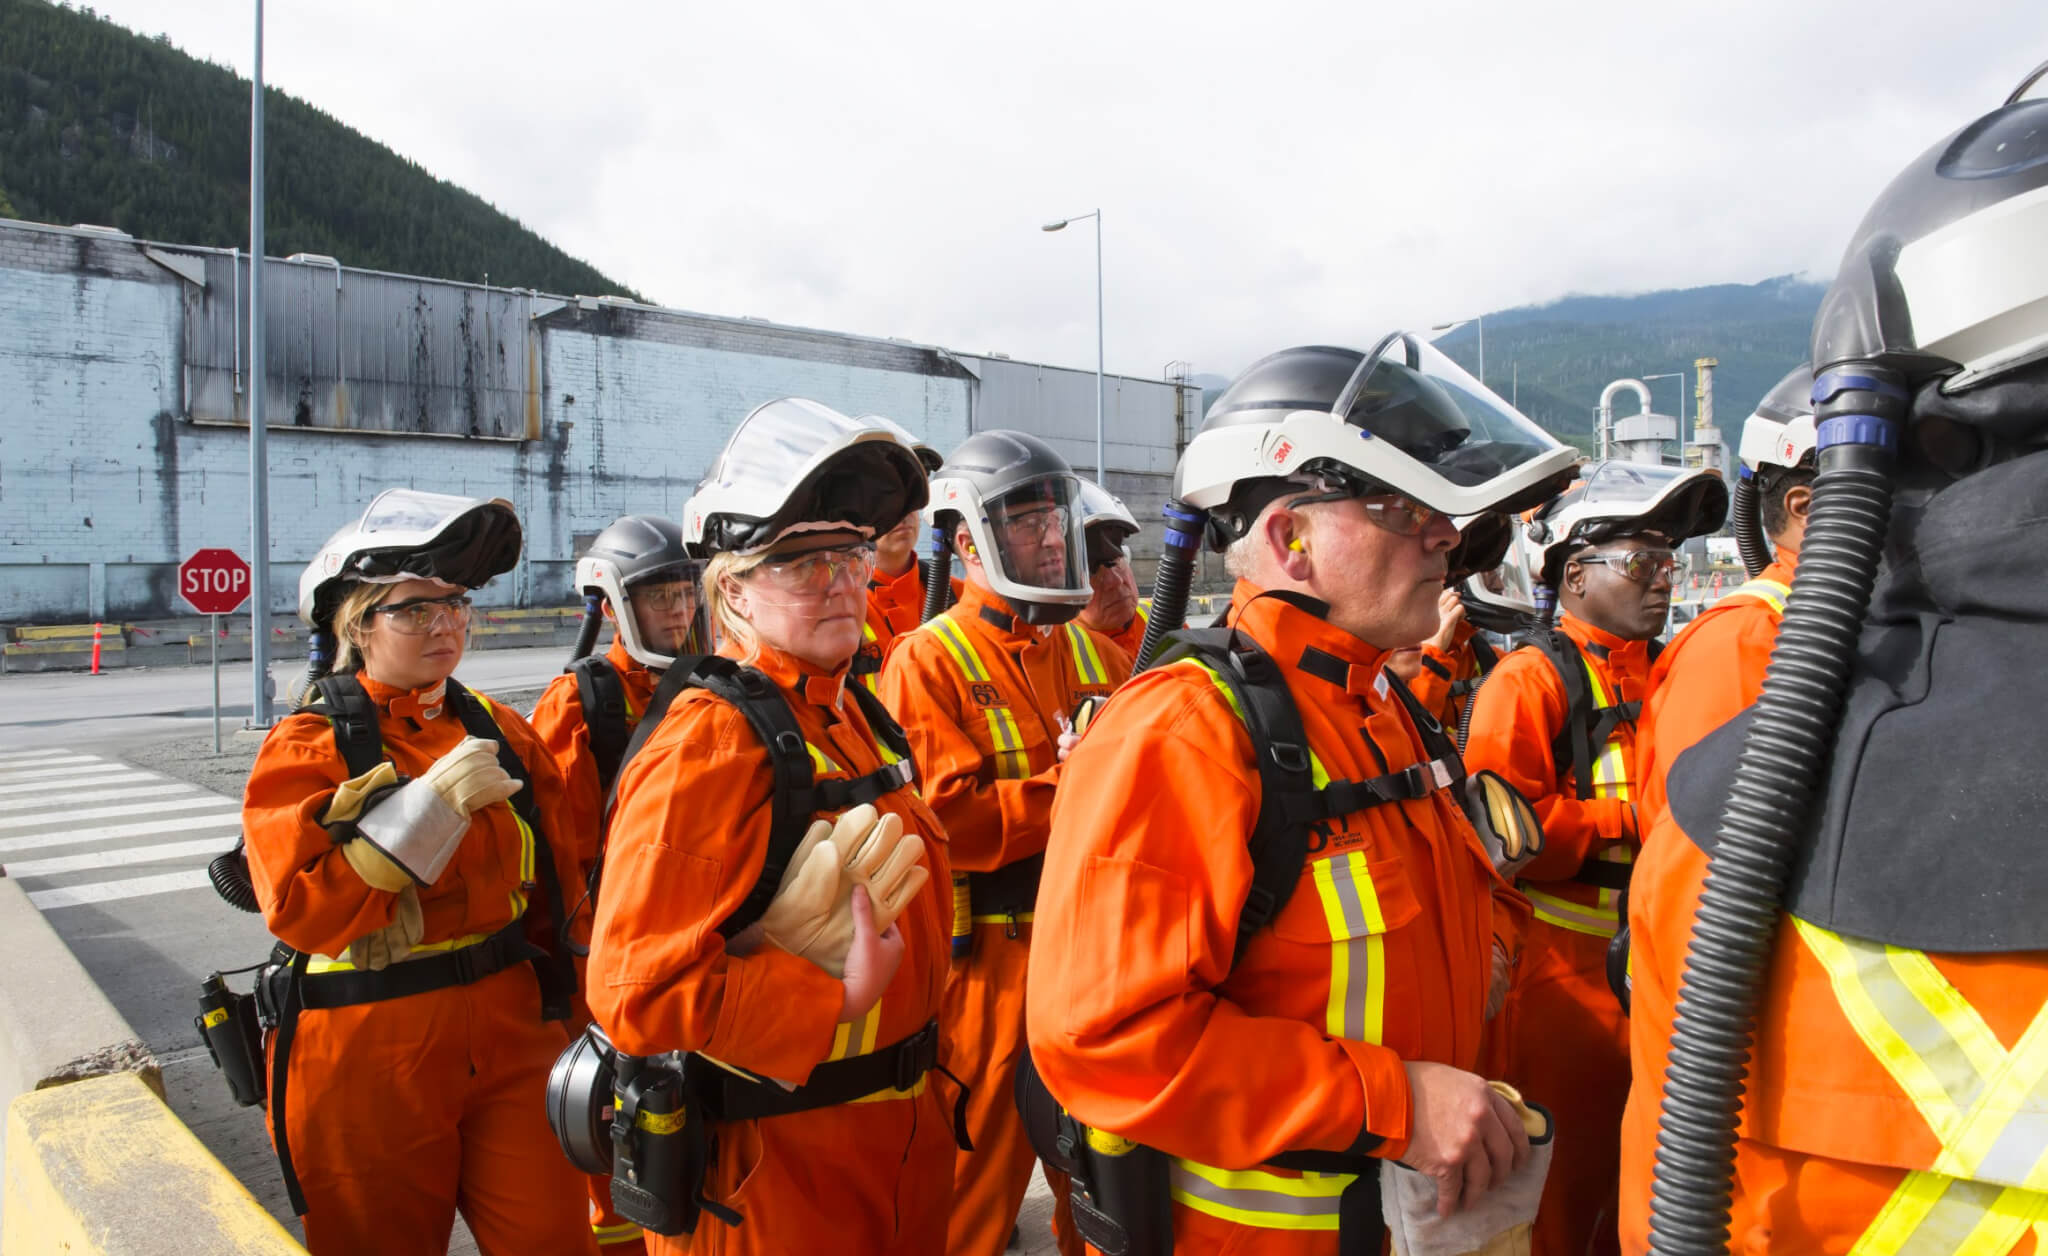 CABC board members tour the Rio Tinto facility in Kitimat, BC